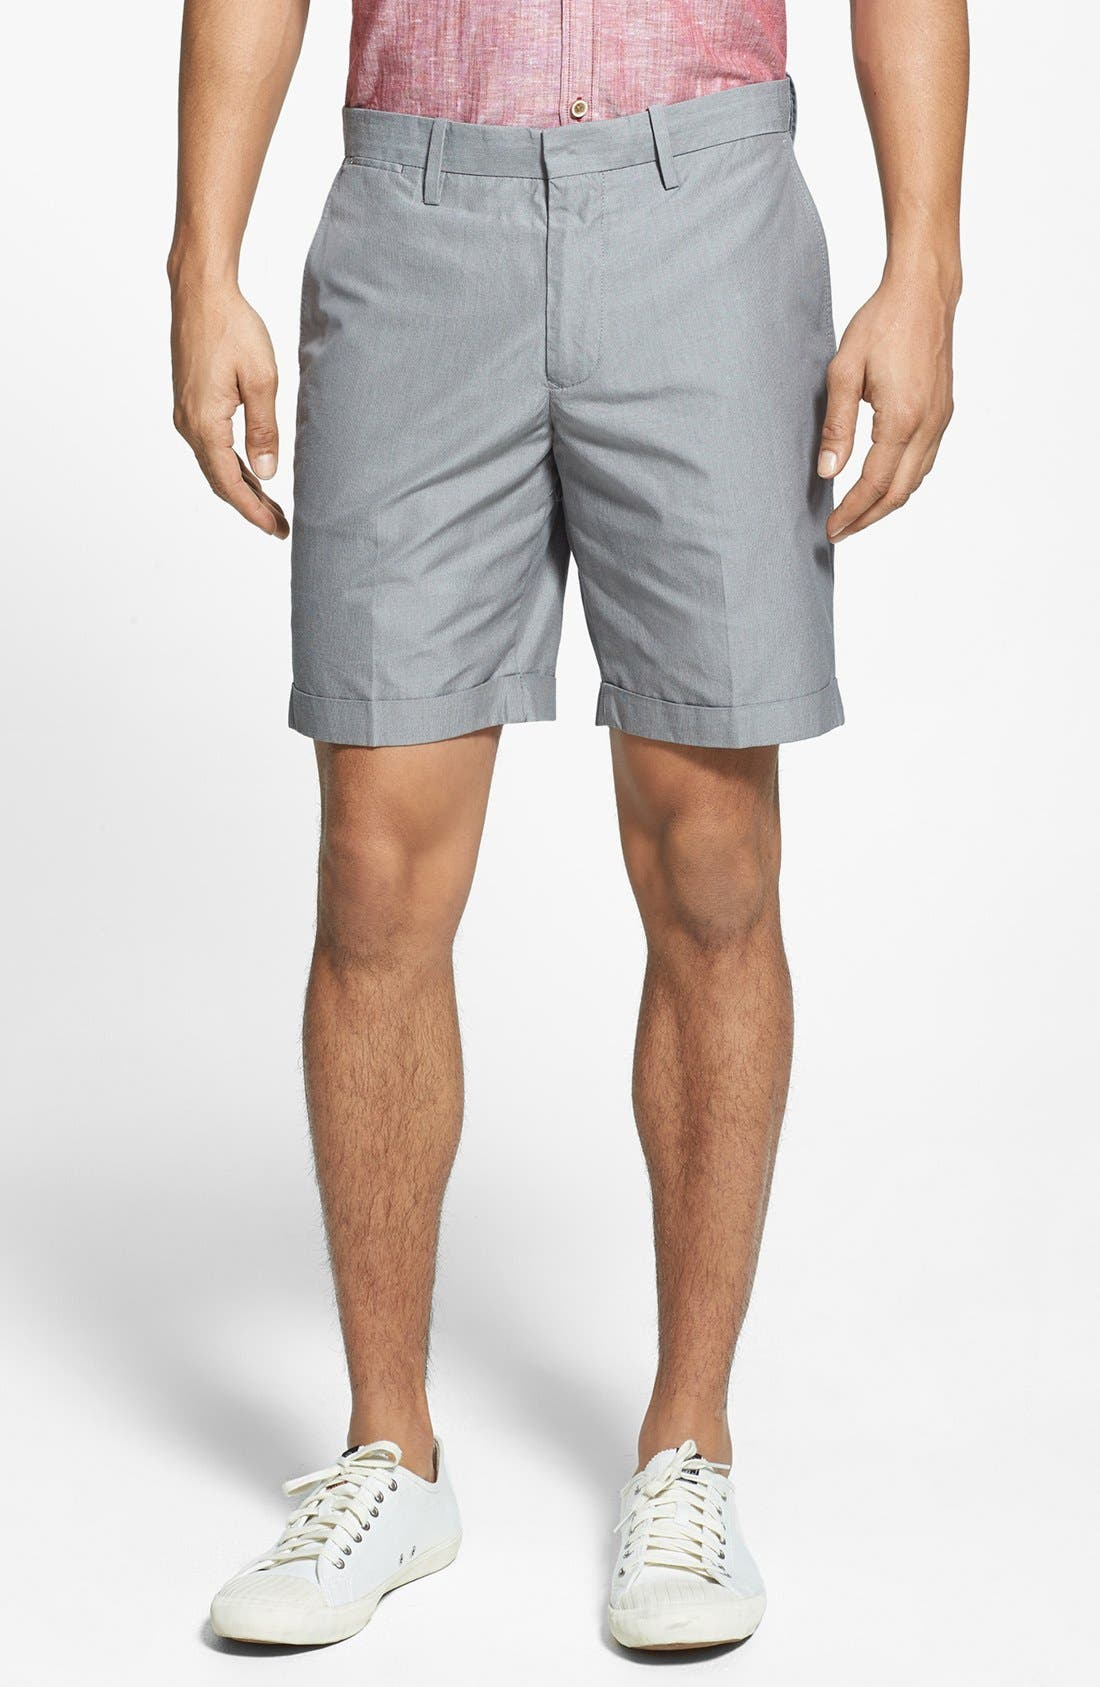 Alternate Image 1 Selected - Original Penguin Tailored Cuffed Trouser Shorts